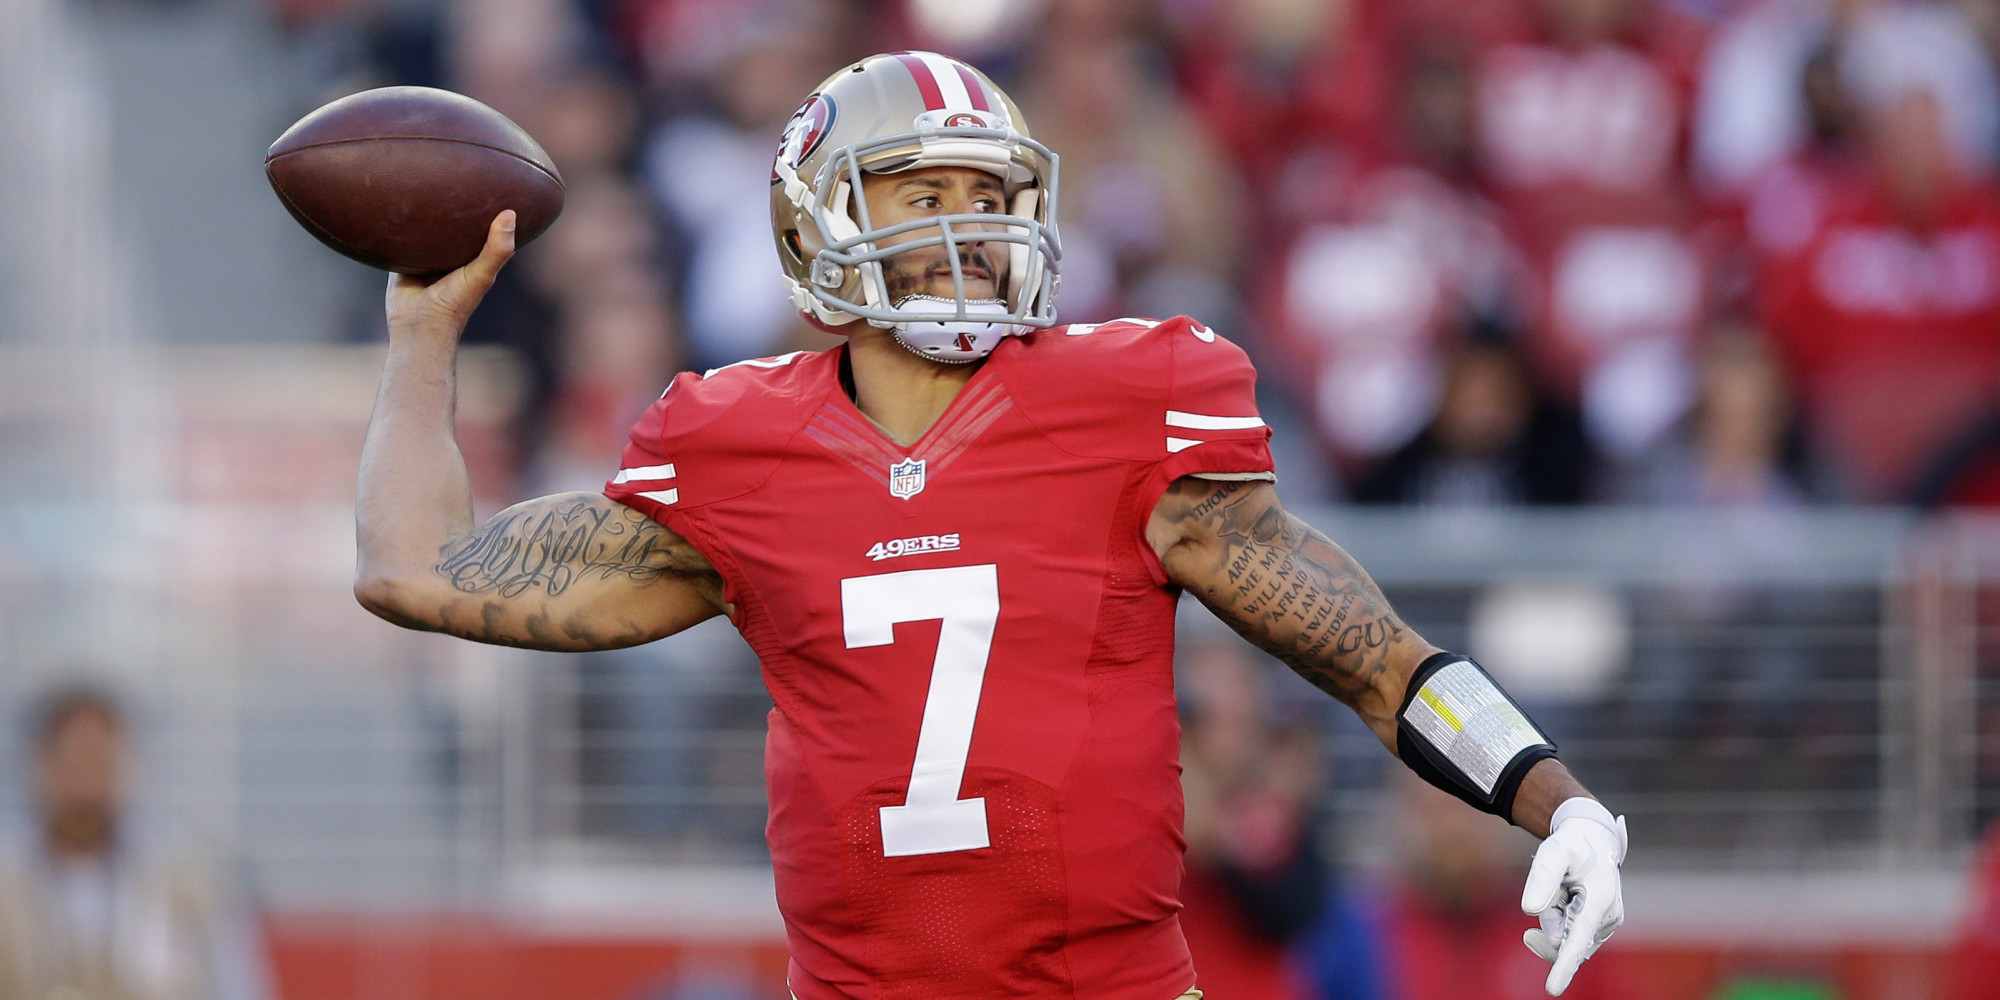 Colin Kaepernick playing for the 49ers